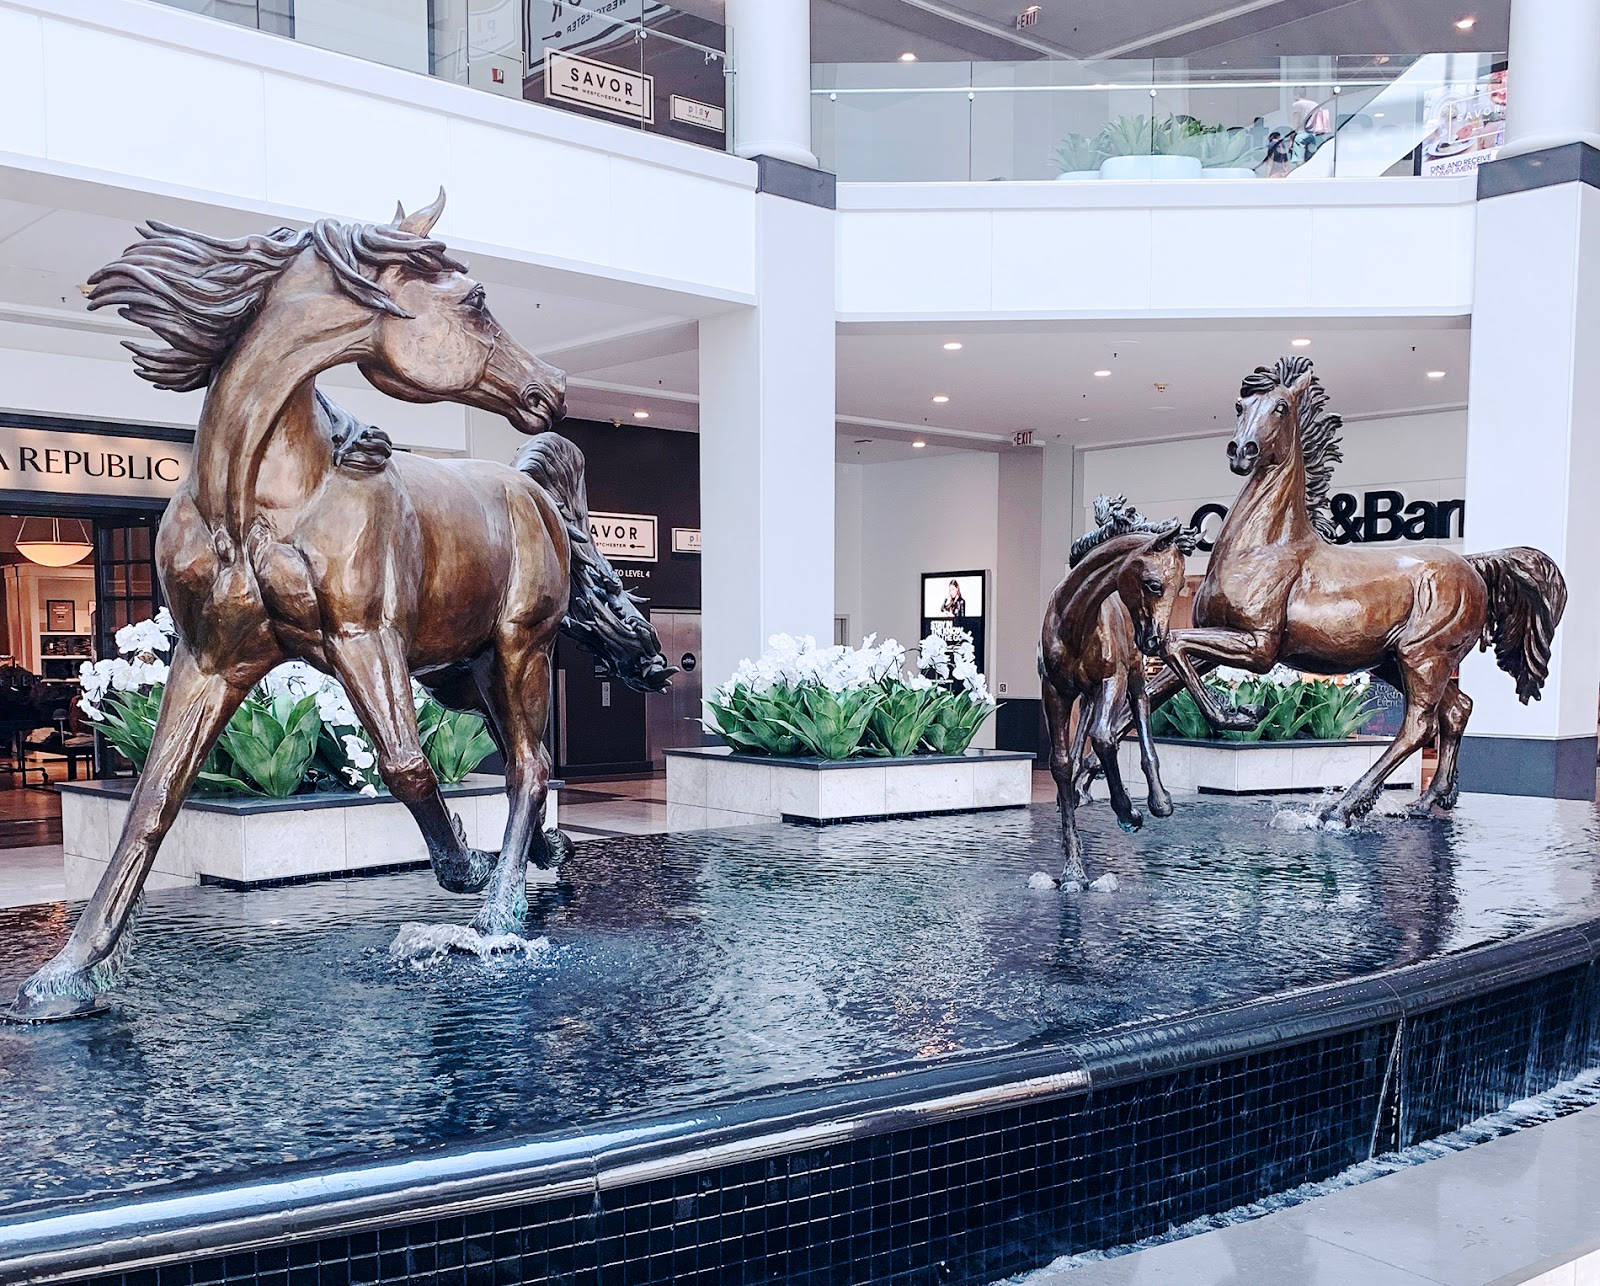 Travel,The Westchester __ shopping mall in downtown White Plains, New York